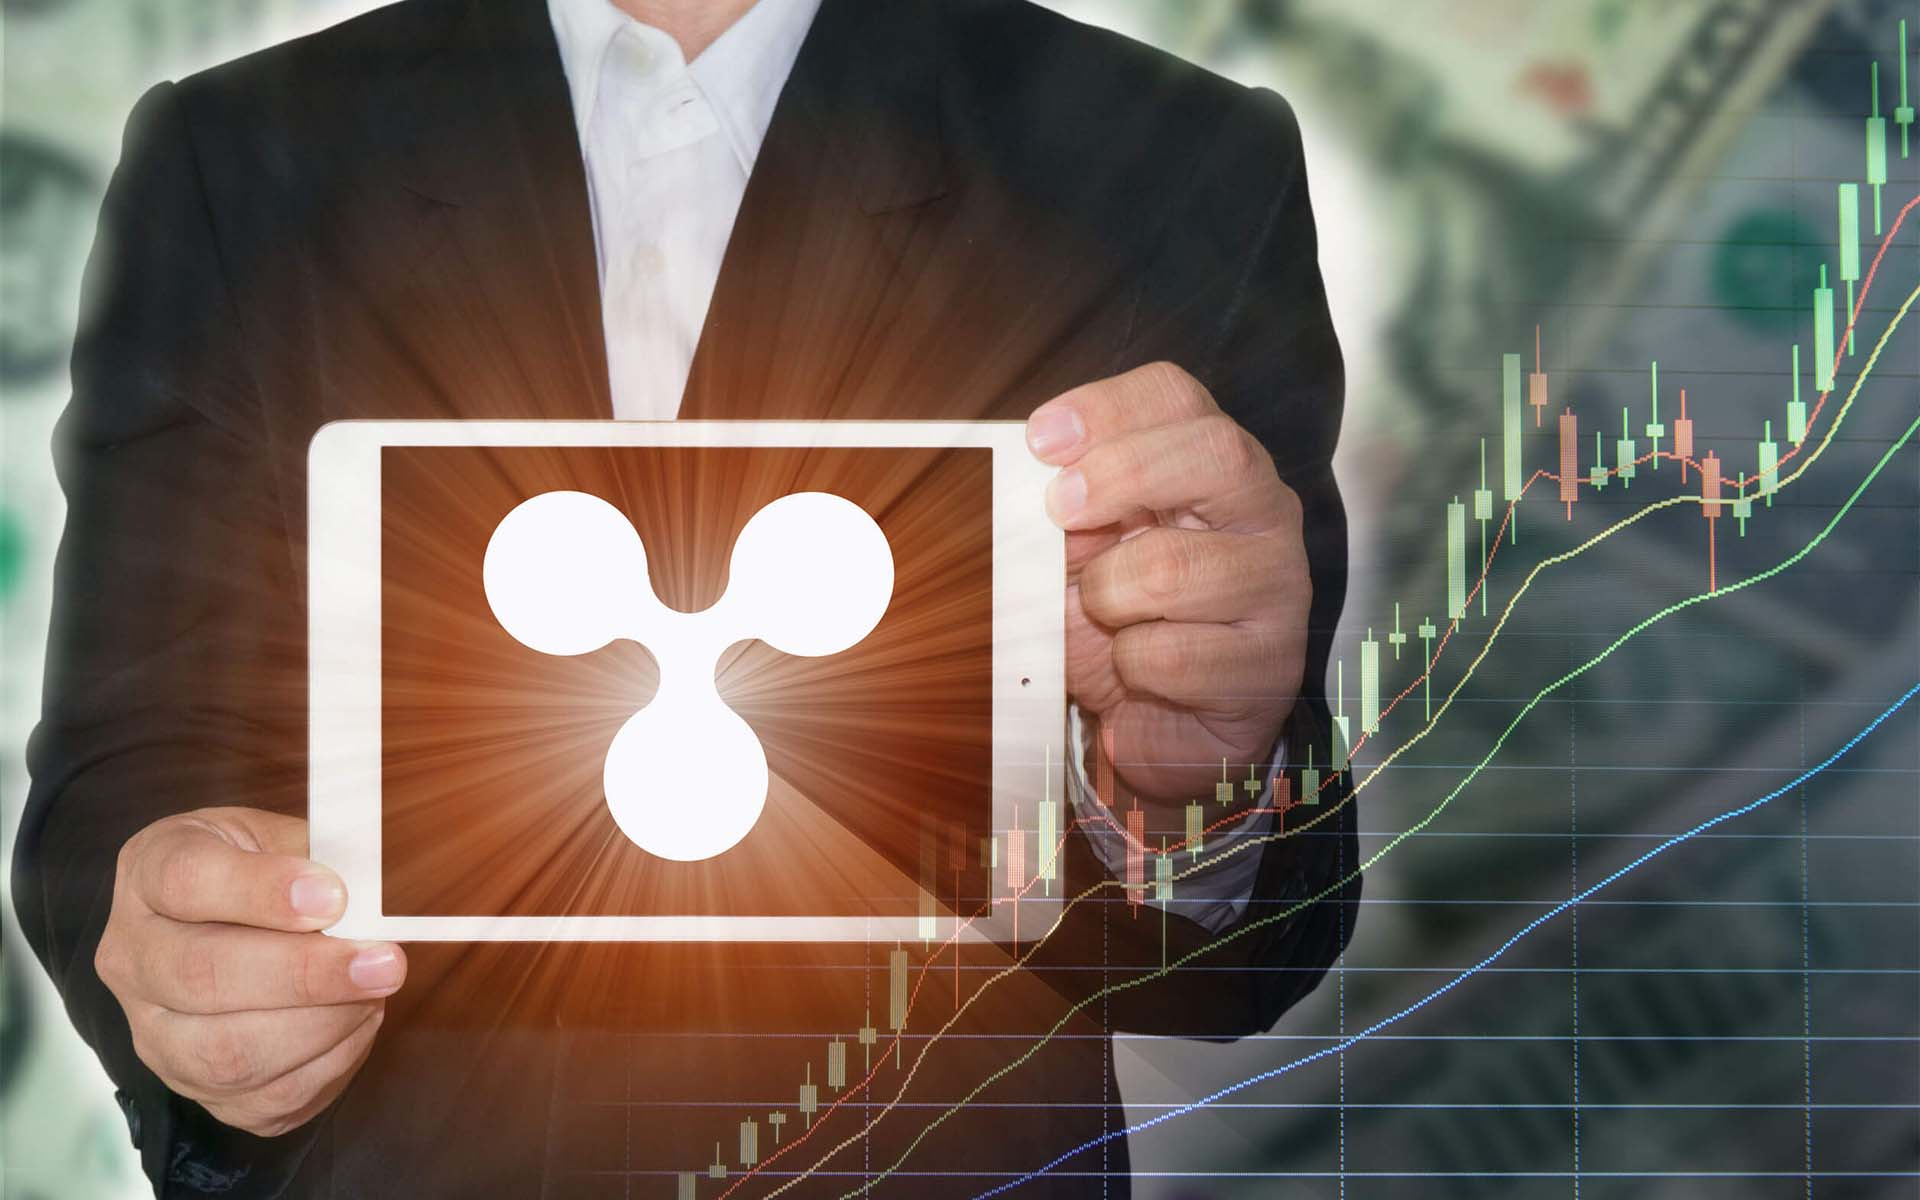 Ripple Announces Xpring Initiative to Build Ecosystem Around XRP